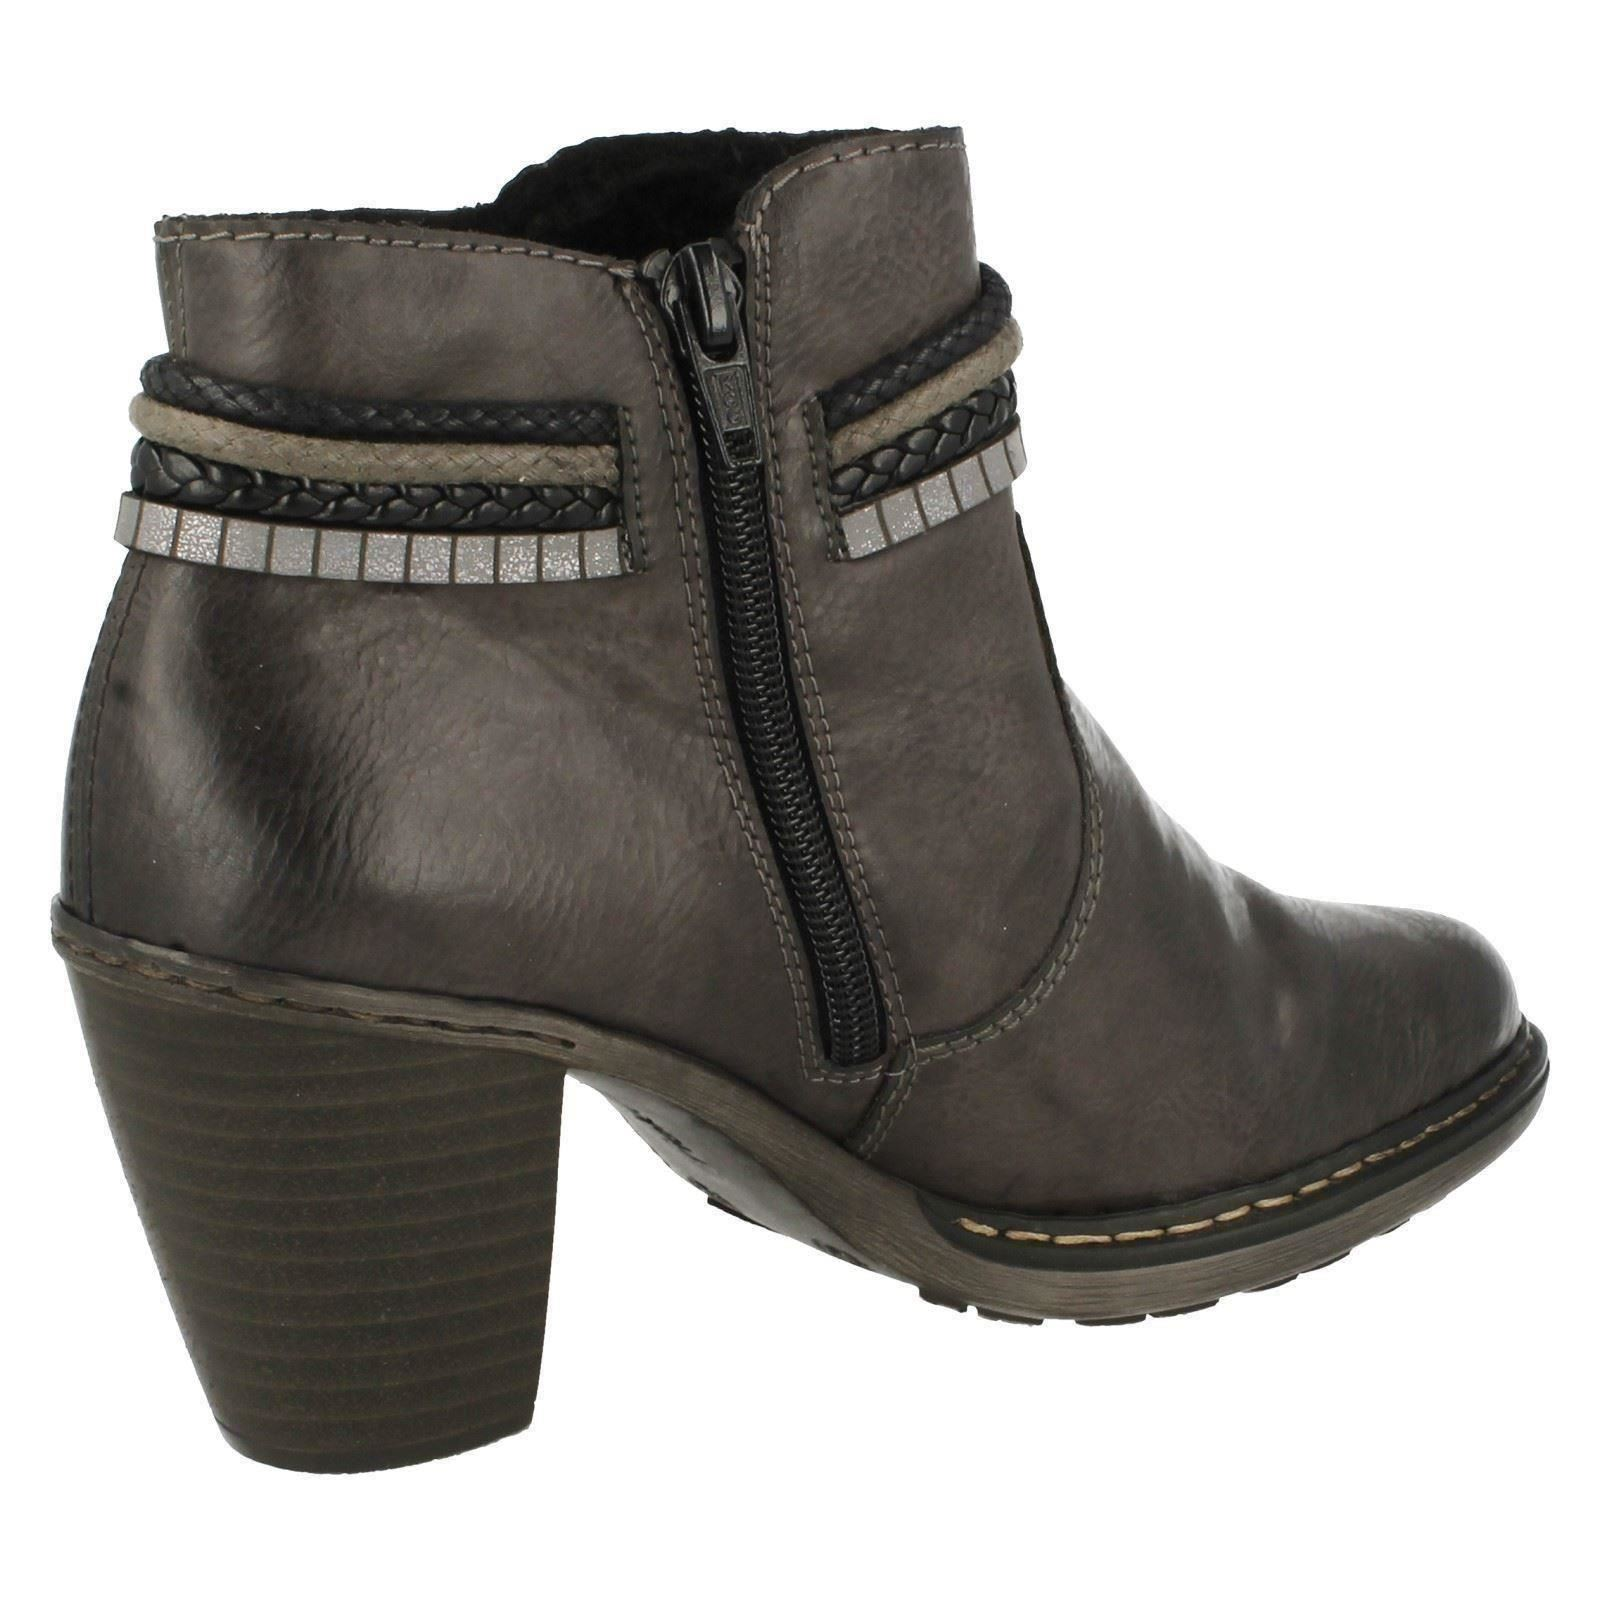 Man/Woman Ladies Rieker Ankle Boots 55298 - 55298 Boots superior Skilled manufacturing high quality product 953222